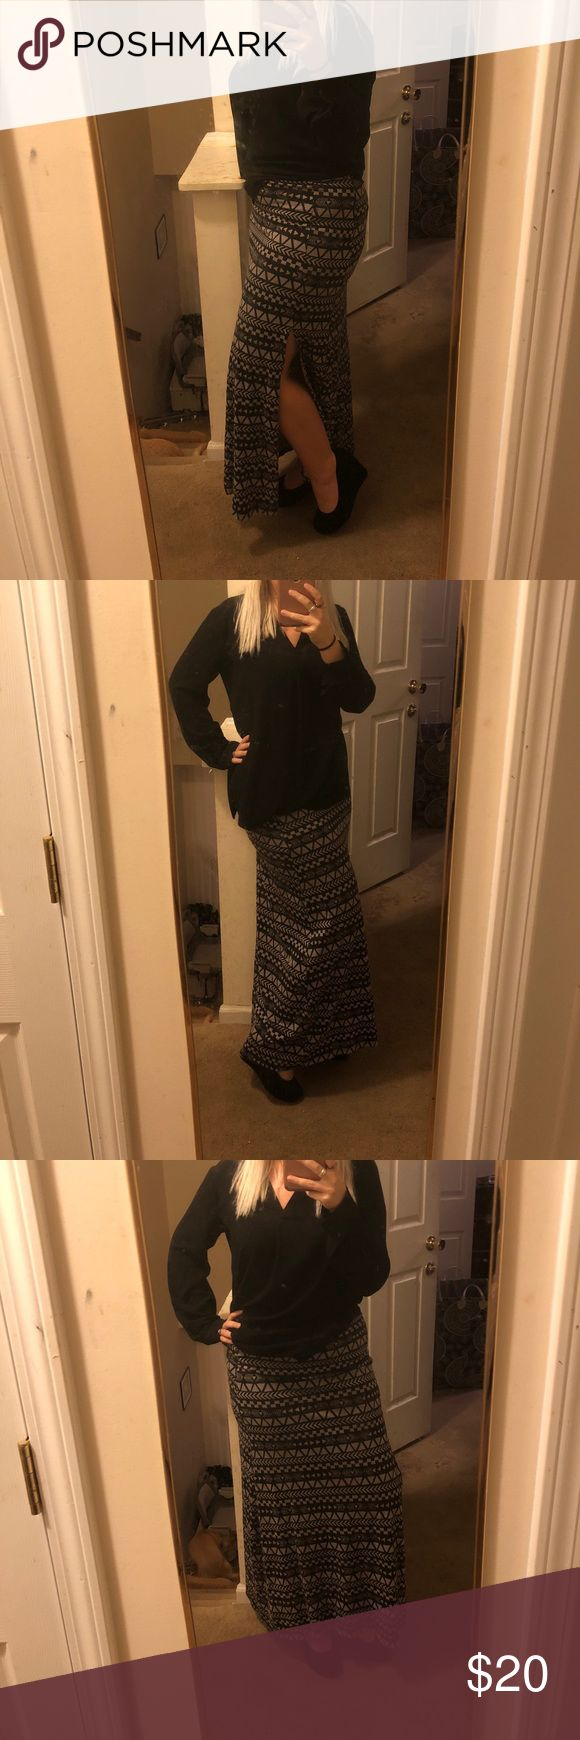 Purple/Grey & Black Side Slit Aztec Maxi Skirt Only worn a few times. This skirt is in great condition! T has a gorgeous design and sexy side slit. Brand is Threads 4 Thought. Fits true to size. Please let me know if you have any more questions! Threads 4 Thought Skirts Maxi